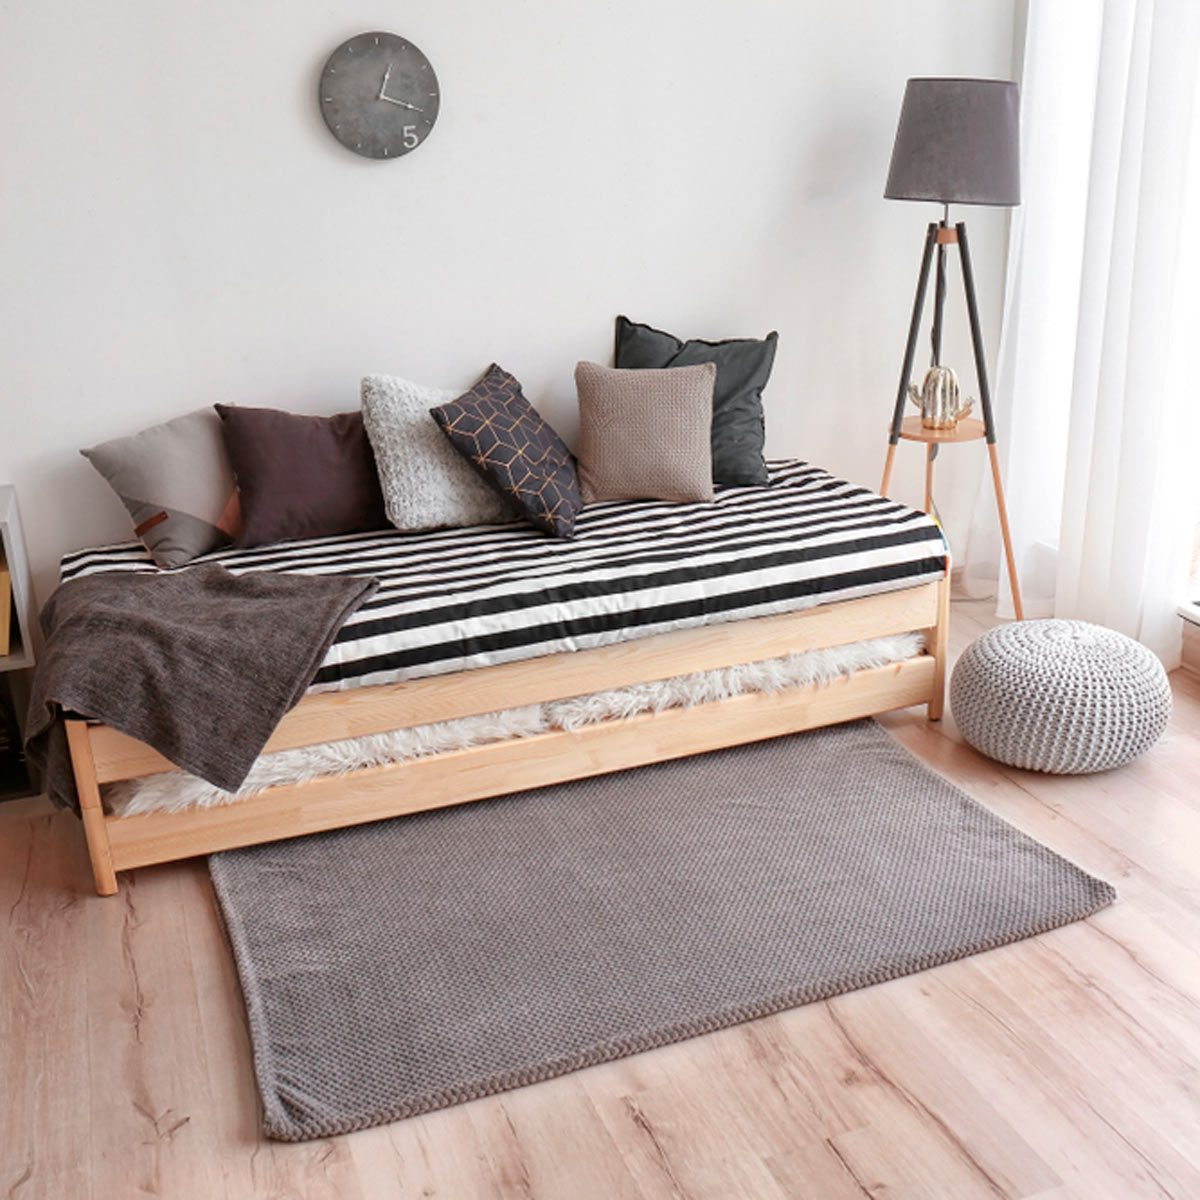 Black and white bed